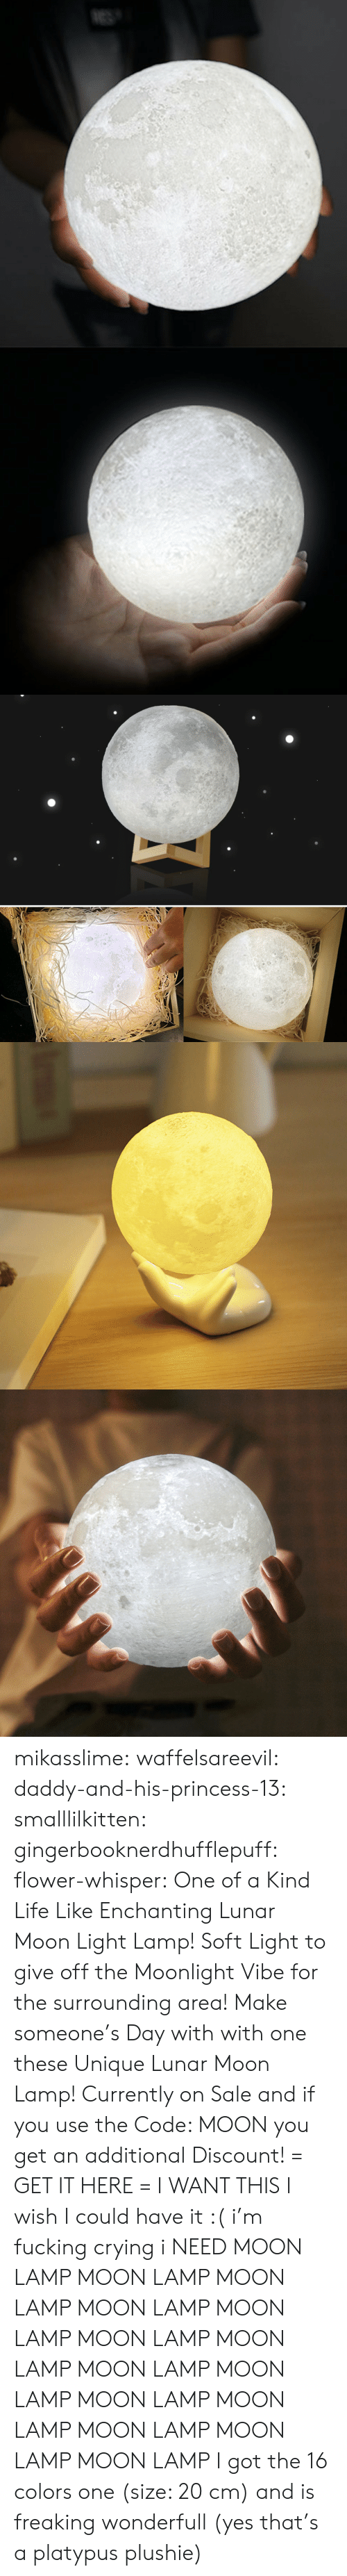 Crying, Fucking, and Life: mikasslime: waffelsareevil:   daddy-and-his-princess-13:  smalllilkitten:   gingerbooknerdhufflepuff:   flower-whisper:  One of a Kind Life Like Enchanting Lunar Moon Light Lamp! Soft Light to give off the Moonlight Vibe for the surrounding area! Make someone's Day with with one these Unique Lunar Moon Lamp! Currently on Sale and if you use the Code: MOON you get an additional Discount! = GET IT HERE =   I WANT THIS   I wish I could have it :(   i'm fucking crying i NEED   MOON LAMP MOON LAMP MOON LAMP MOON LAMP MOON LAMP MOON LAMP MOON LAMP MOON LAMP MOON LAMP MOON LAMP MOON LAMP MOON LAMP MOON LAMP MOON LAMP     I got the 16 colors one (size: 20 cm) and is freaking wonderfull (yes that's a platypus plushie)